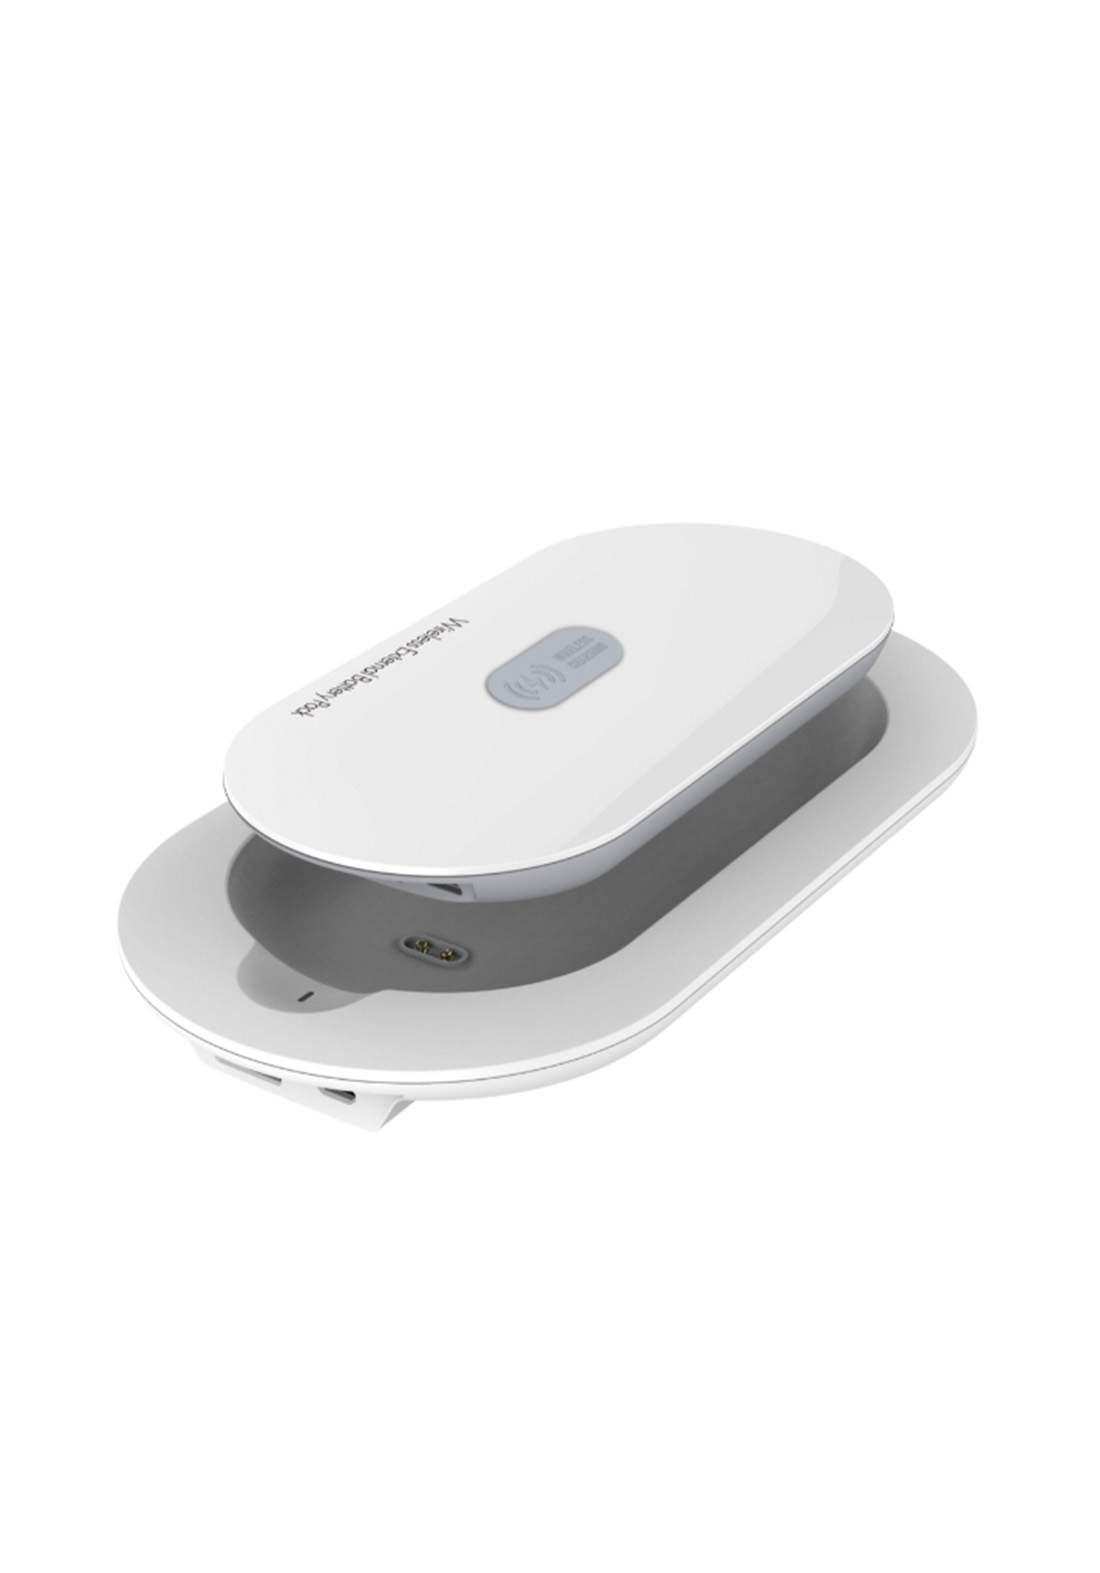 Ldnio PW501 Wireless Power Bank with Charging Base - White شاحن محمول